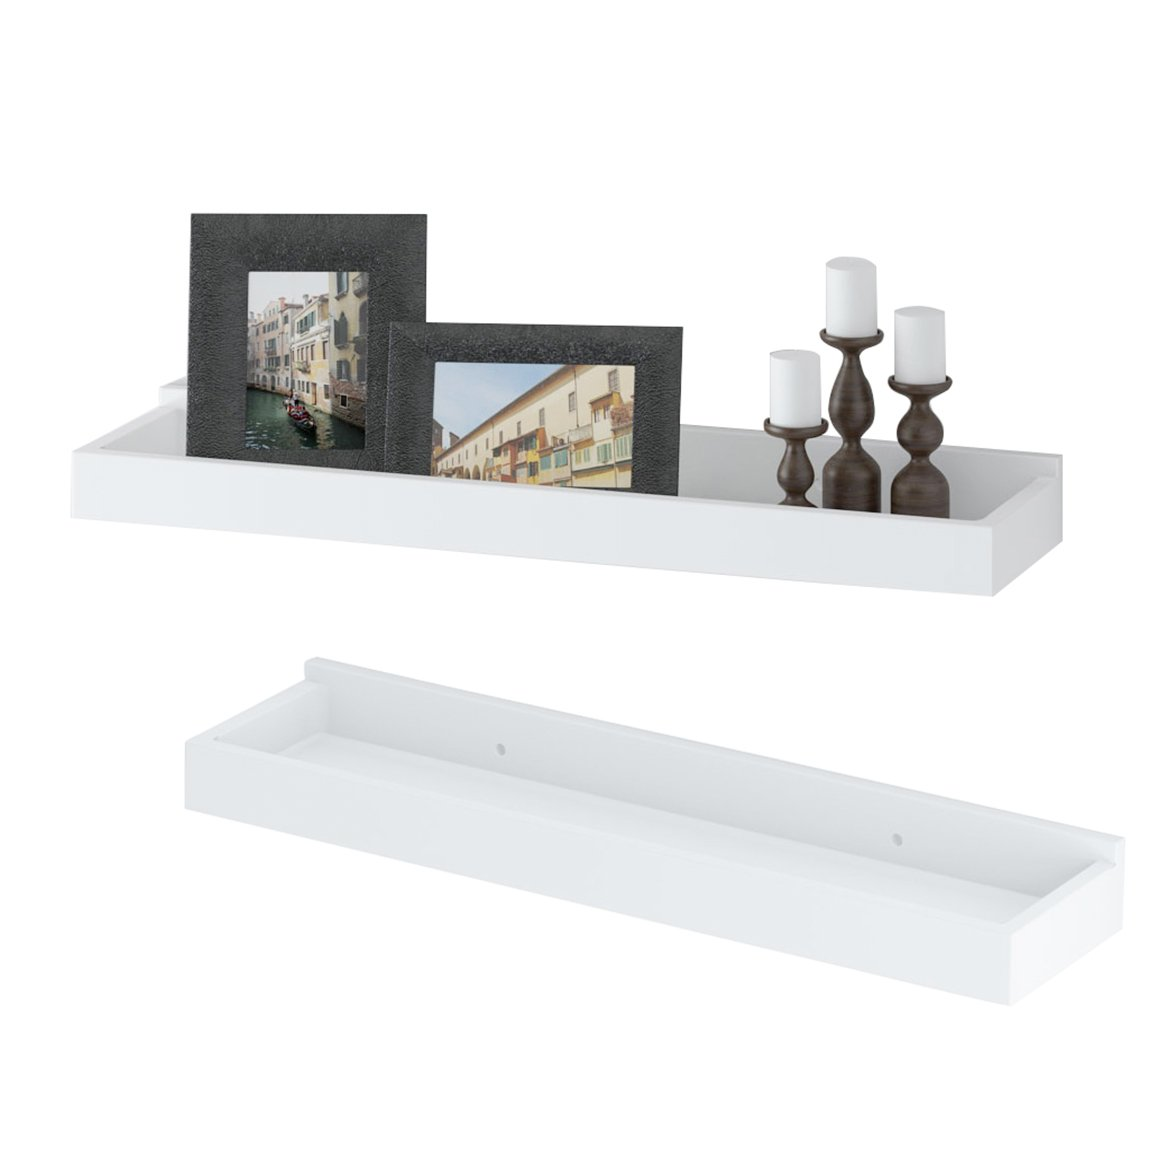 wallniture modern floating shelf tray wall mount home white shelves decor inch set kitchen laying stick tile reclaimed wood bathroom garage tool organizer rack metal ladder corner